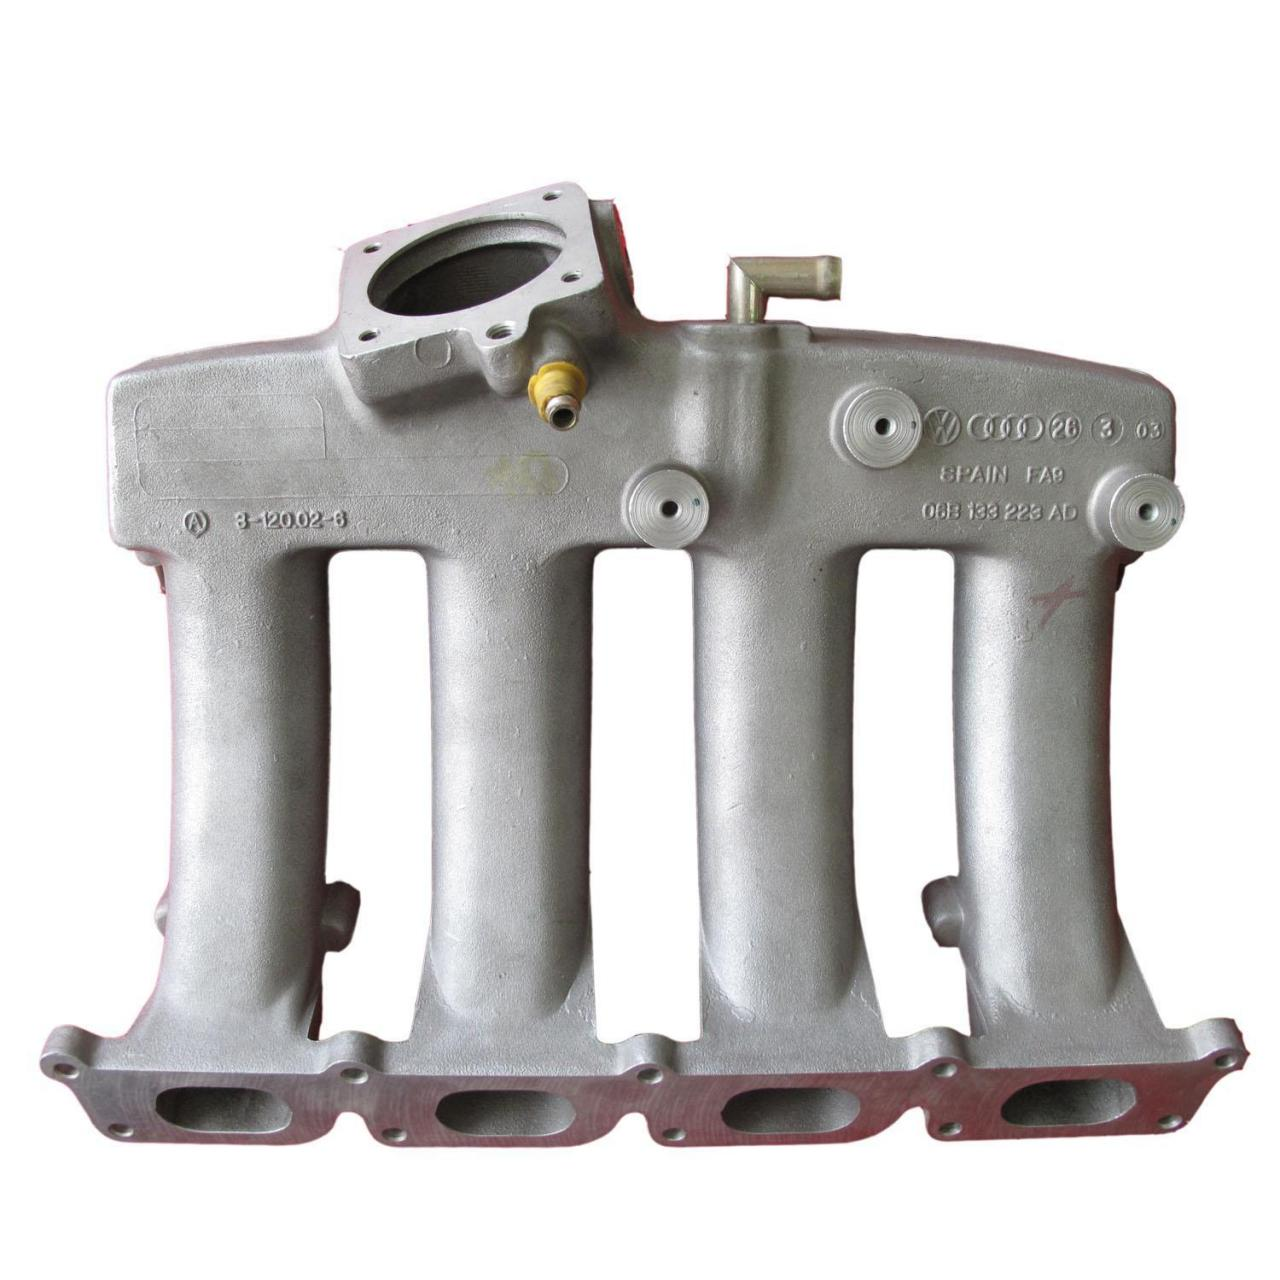 B5 air inlet pipe assembly